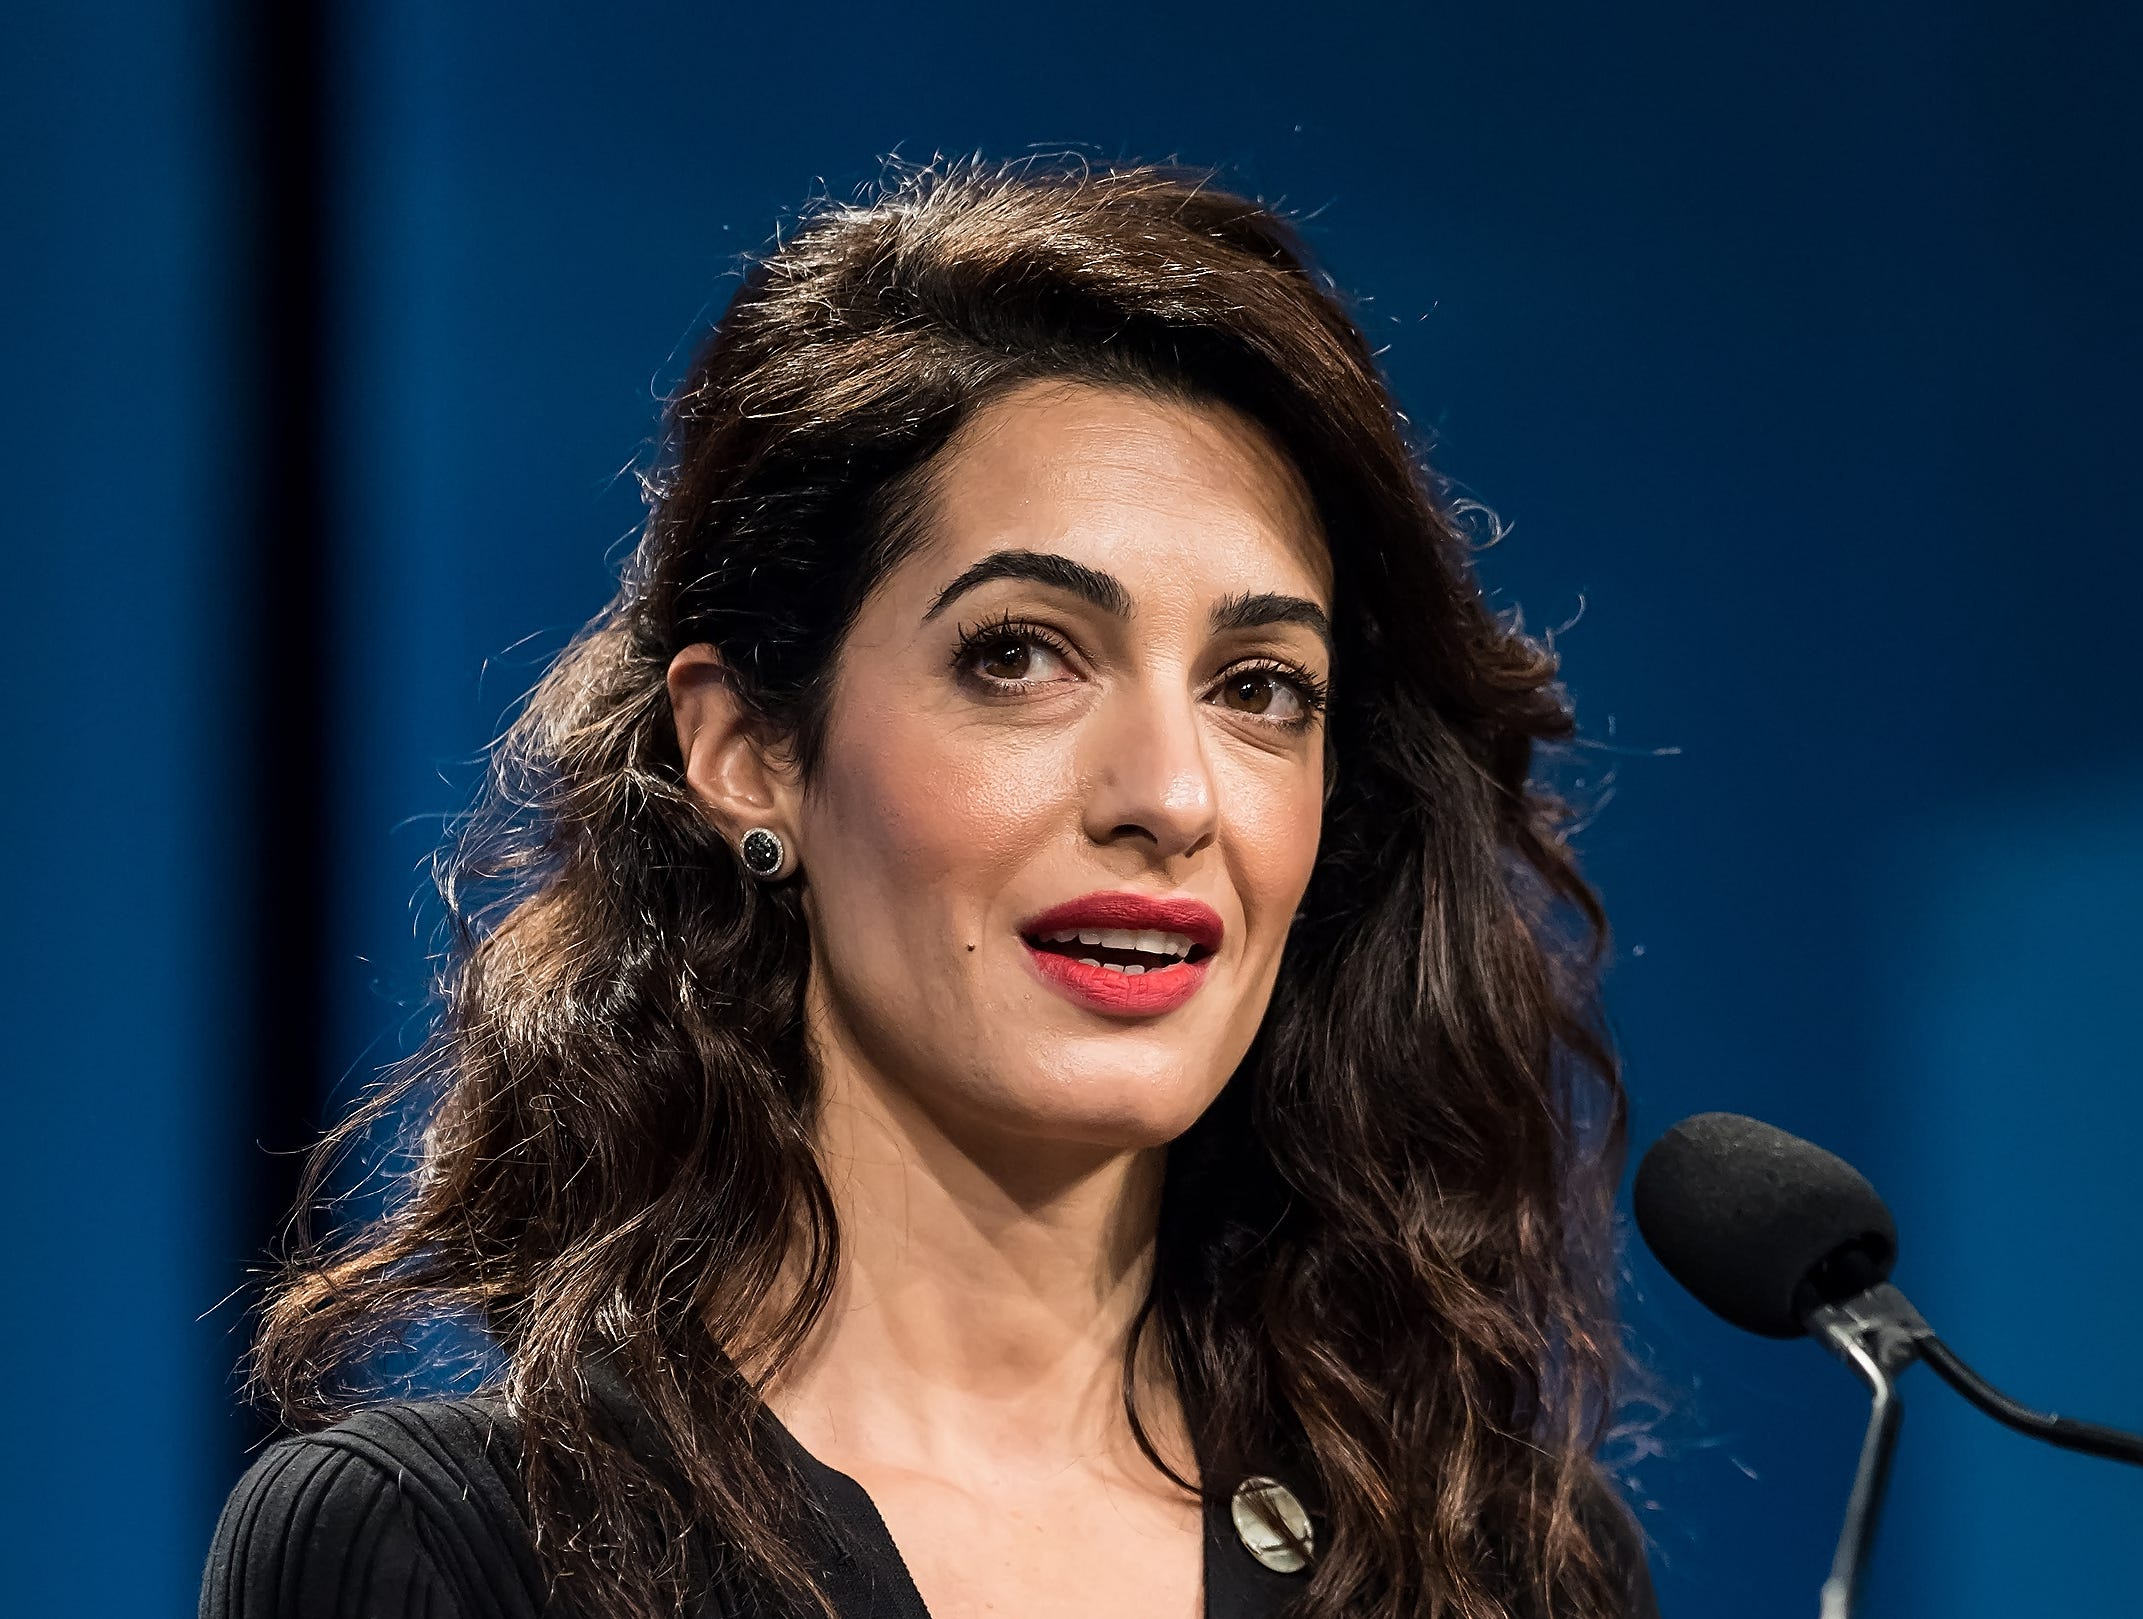 PHILADELPHIA, PA - OCTOBER 12:  Human rights lawyer and specialising in international law Amal Clooney delivers her Keynote Speech on stage during Pennsylvania Conference for Women 2018 at Pennsylvania Convention Center on October 12, 2018 in Philadelphia, Pennsylvania.  (Photo by Gilbert Carrasquillo/WireImage) ORG XMIT: 775241661 ORIG FILE ID: 1051972694